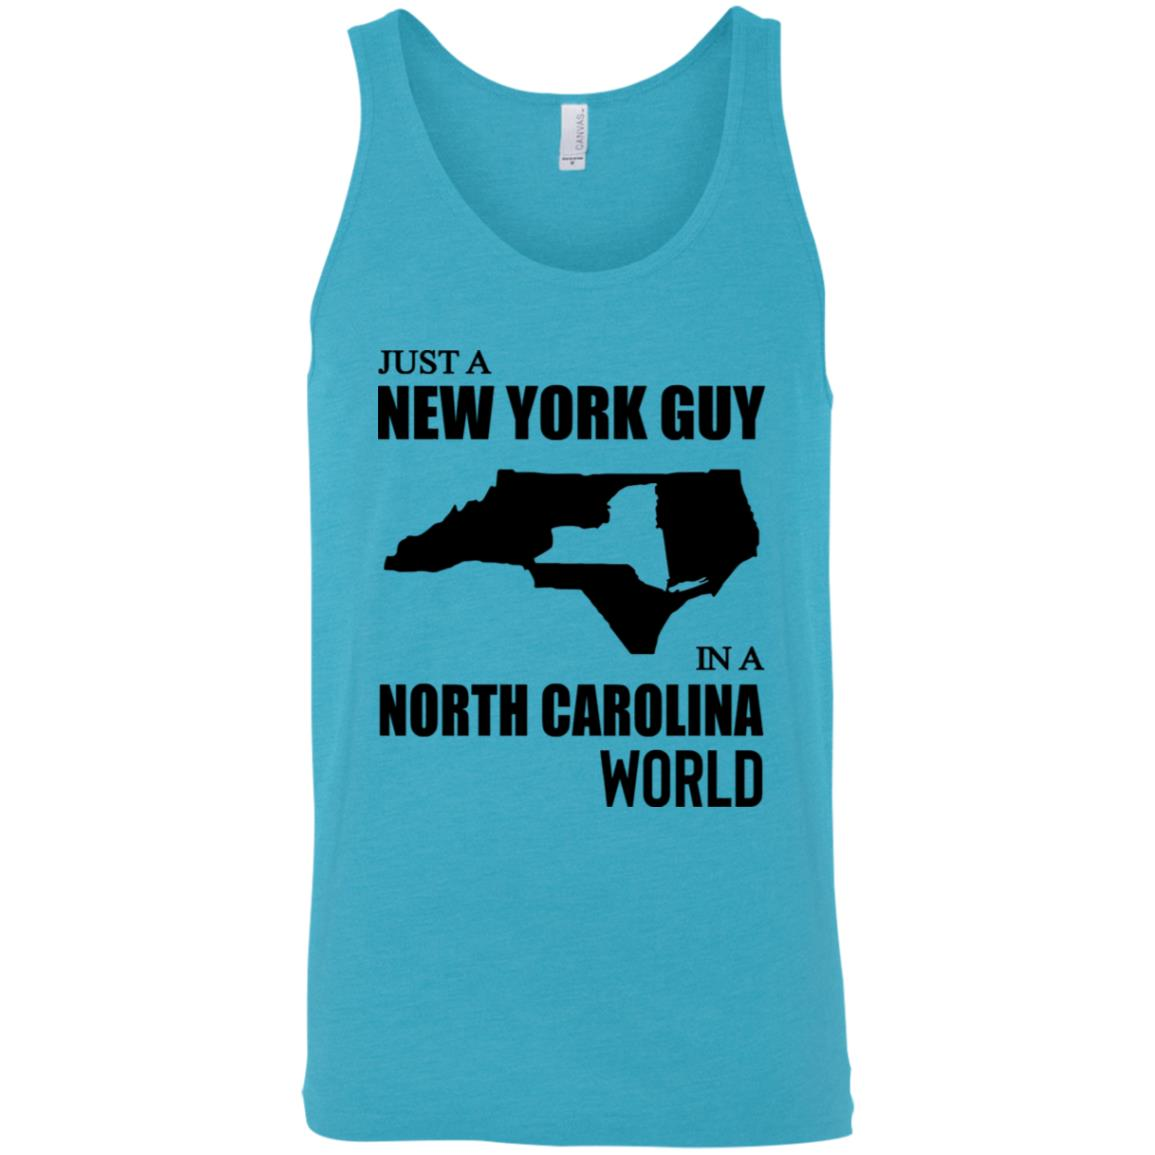 Just A New York Guy In A North Carolina World T-Shirt